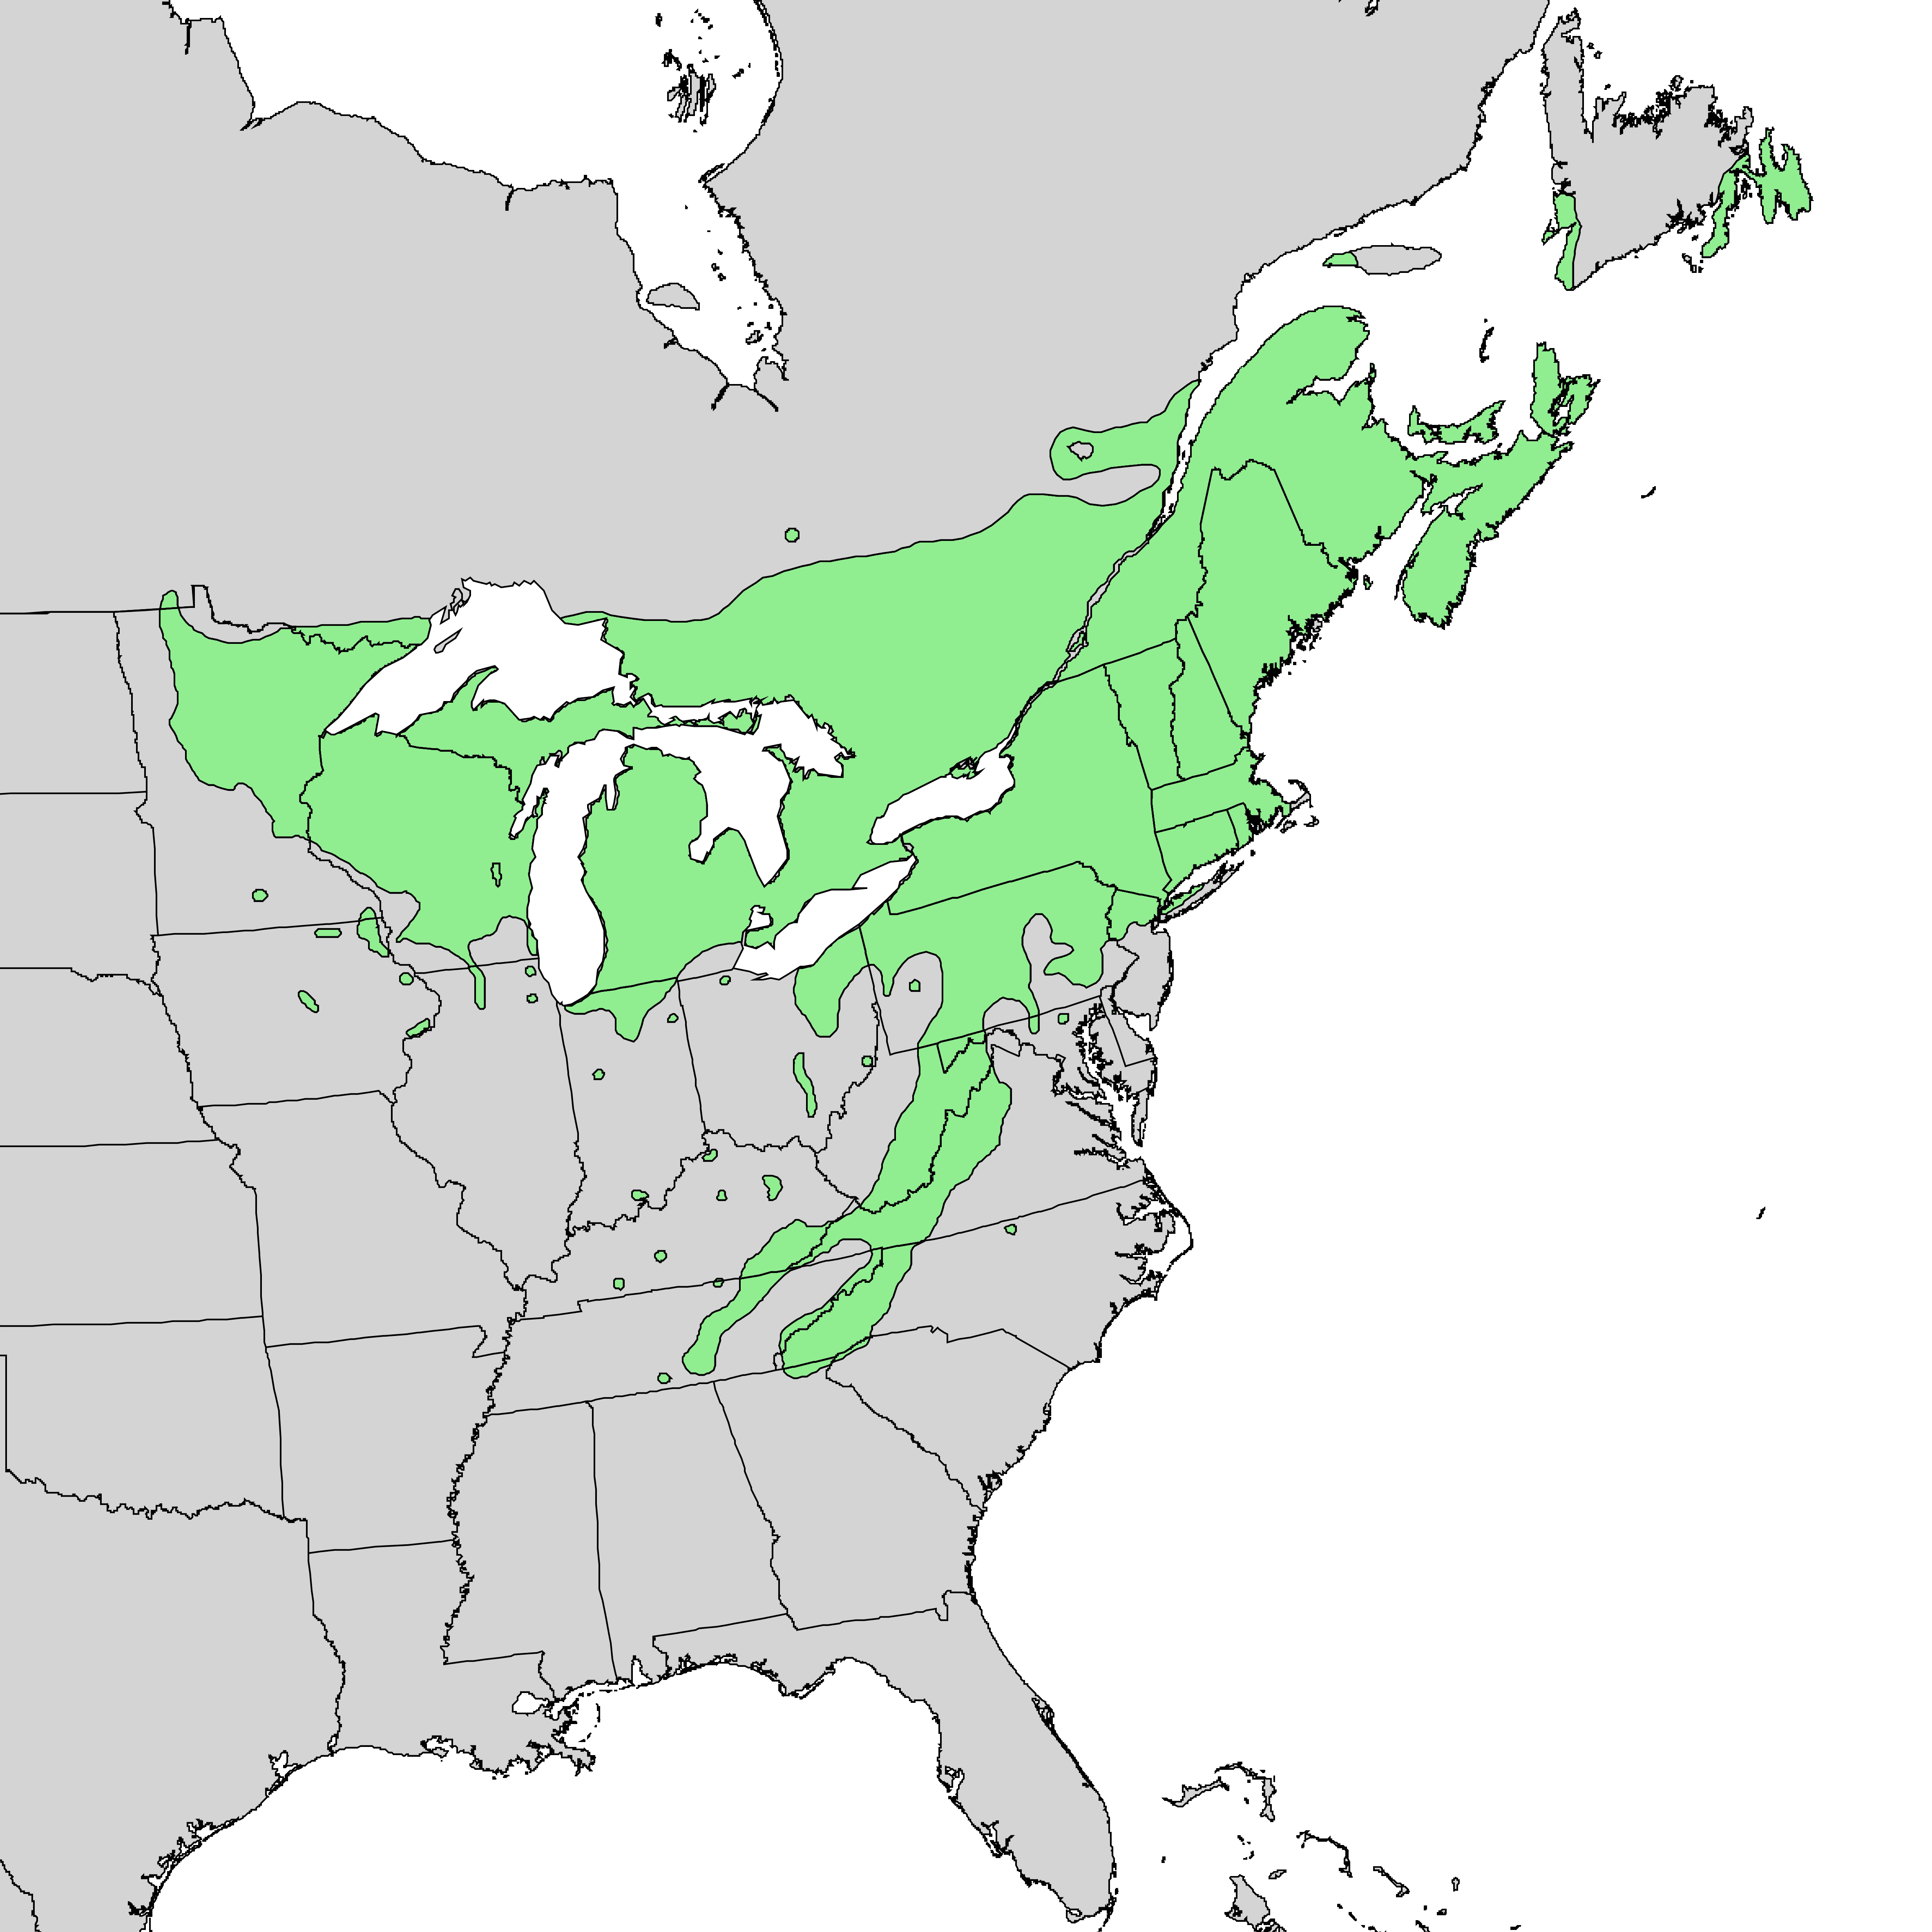 File:Betula alleghaniensis range map 1.png - Wikimedia Commons